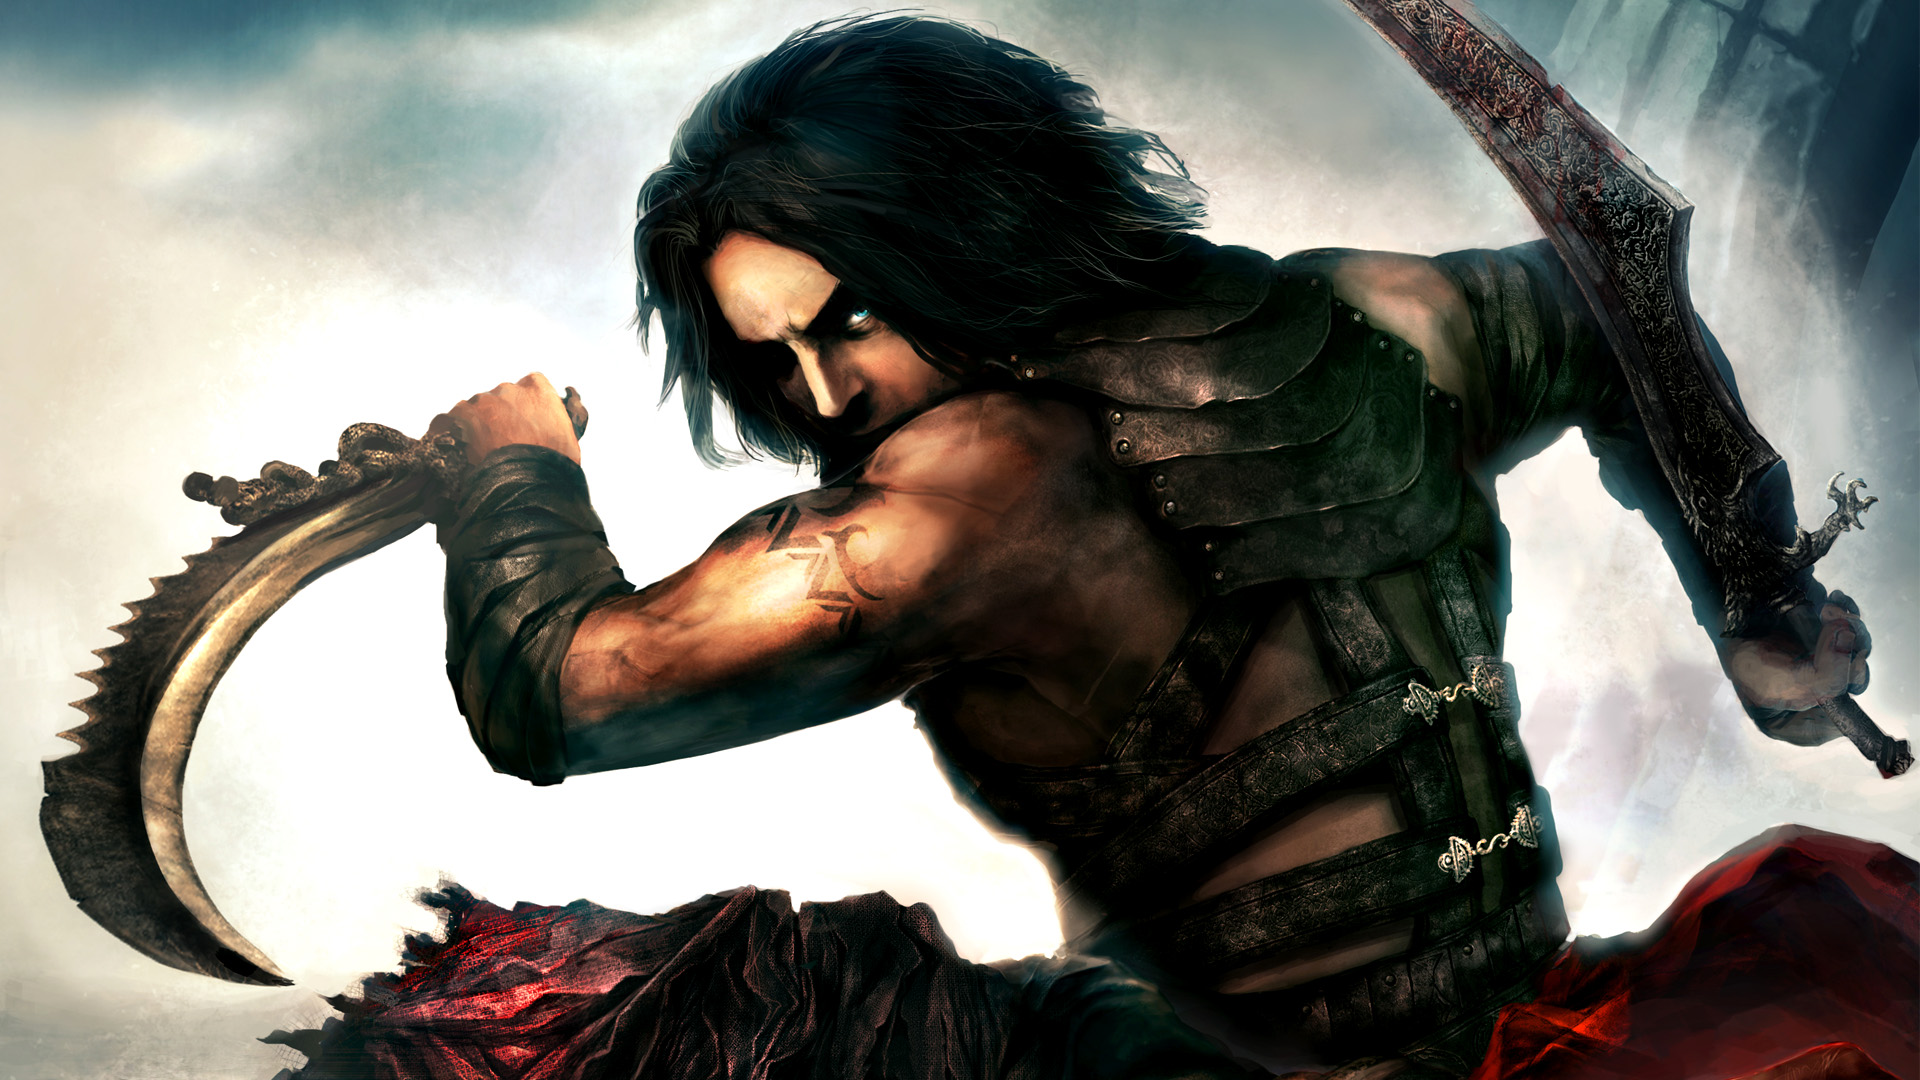 Prince Of Persia Warrior Within Hd Wallpaper Background Image